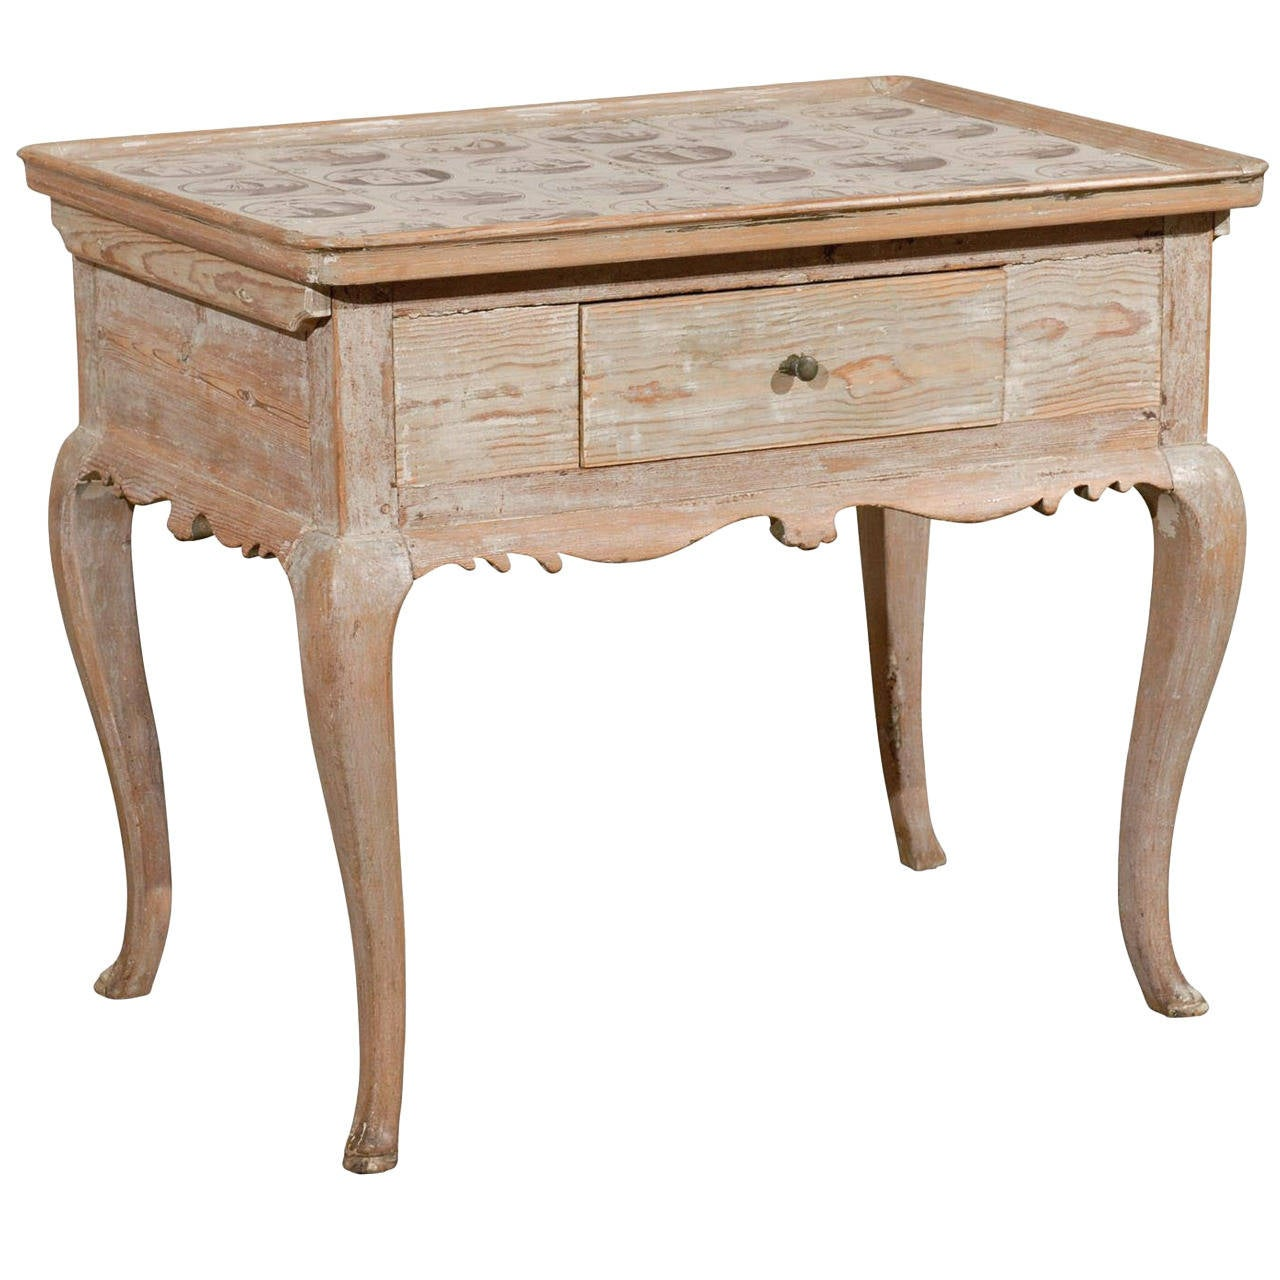 18th Century Swedish Wooden Tray Top Side Table with Dutch Tiles